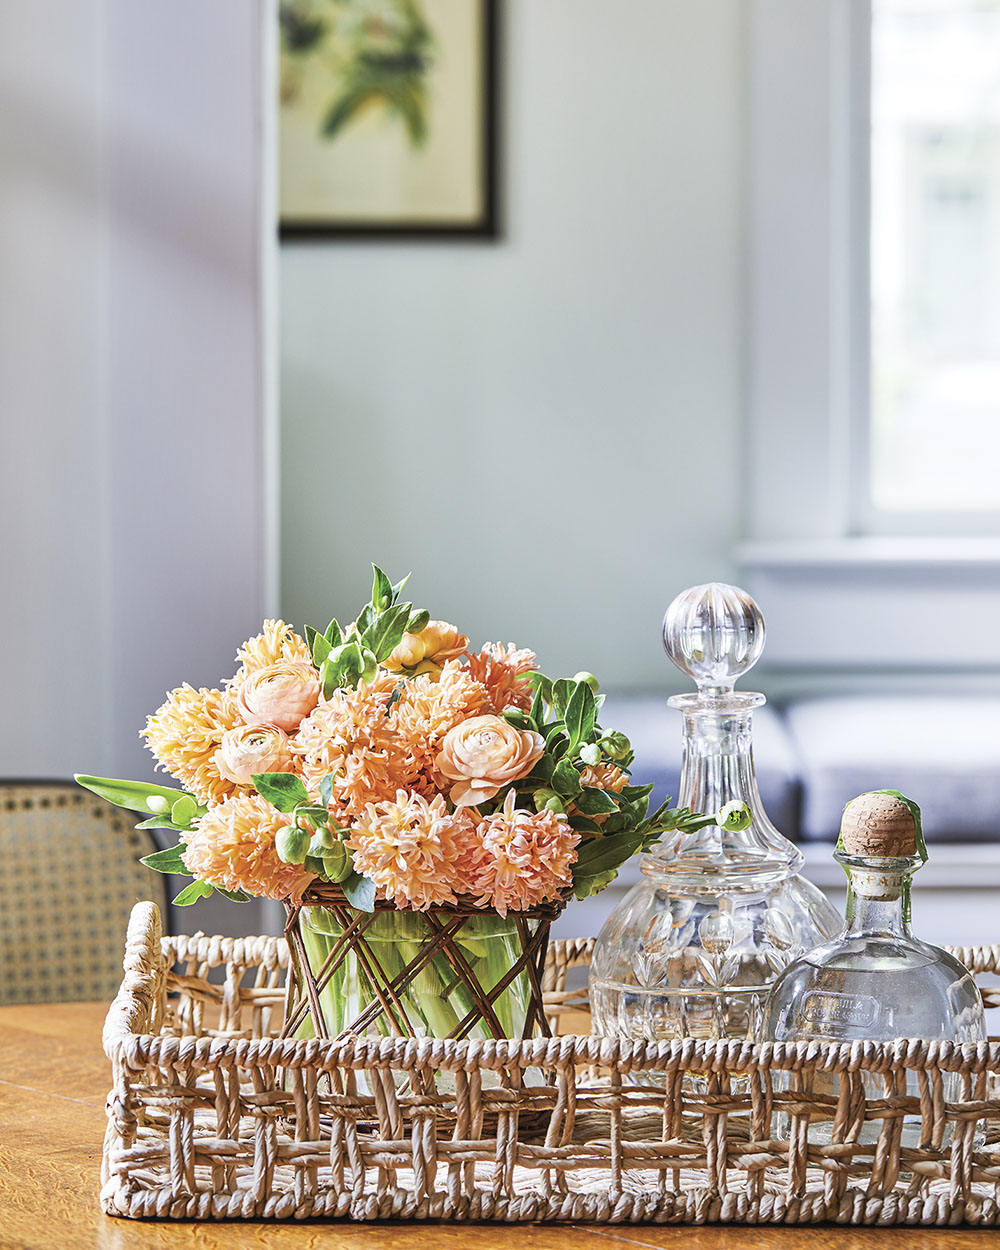 Floral designer Kirk Whitfield placed a peach-color floral arrangement, featuring hyacinth, ranunculus, and hellebores, in a woven tray beside a pair of crystal decanters. The room beyond, which boasts a tall window, is painted a soft pale green.